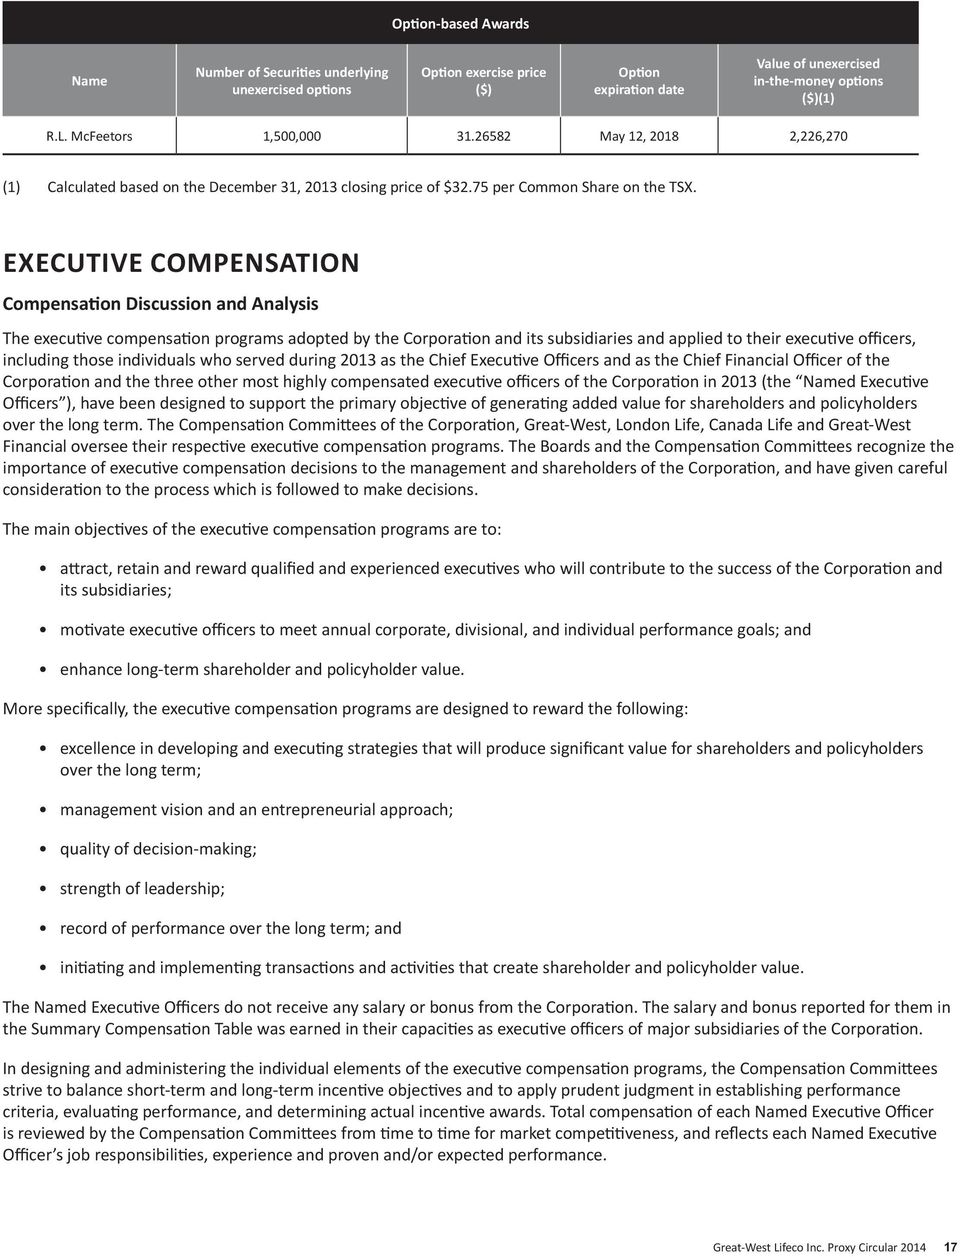 EXECUTIVE COMPENSATION Compensation Discussion and Analysis The executive compensation programs adopted by the Corporation and its subsidiaries and applied to their executive officers, including